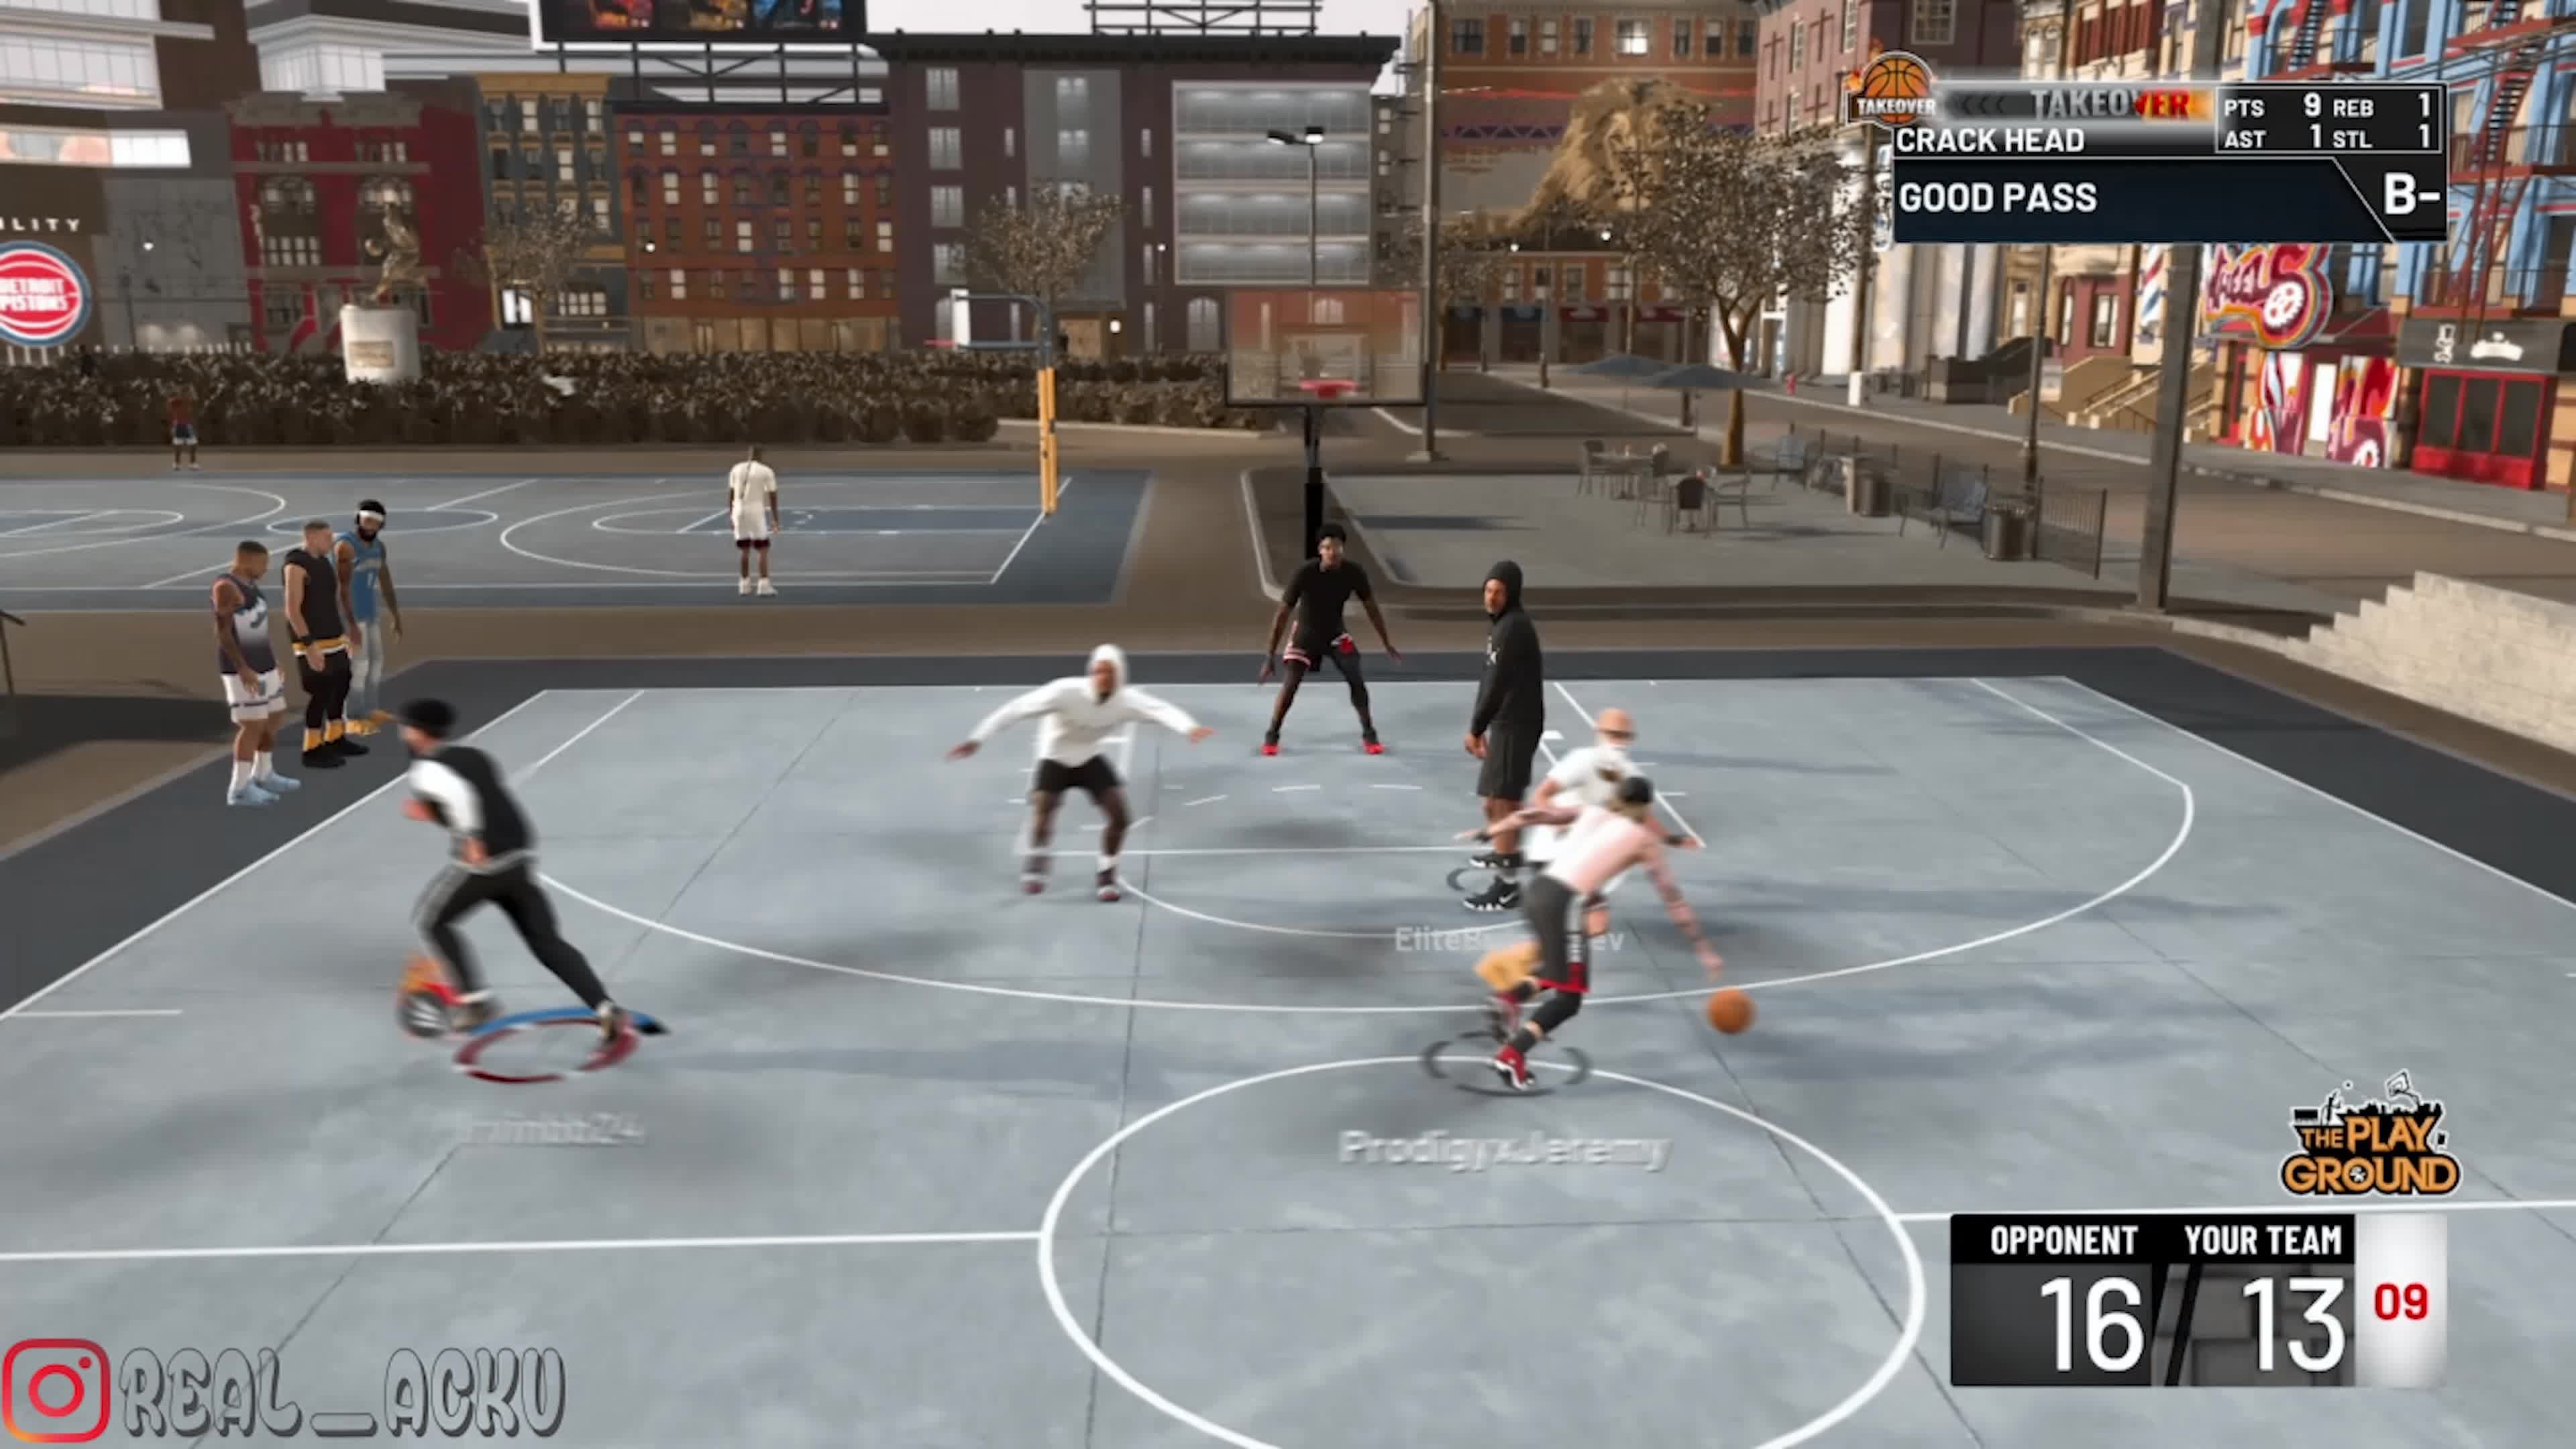 NBA 2K: MyCareer - I posterized this dude twice, but i missed the first one, sadly. man was dead on the floor. video cover image 0